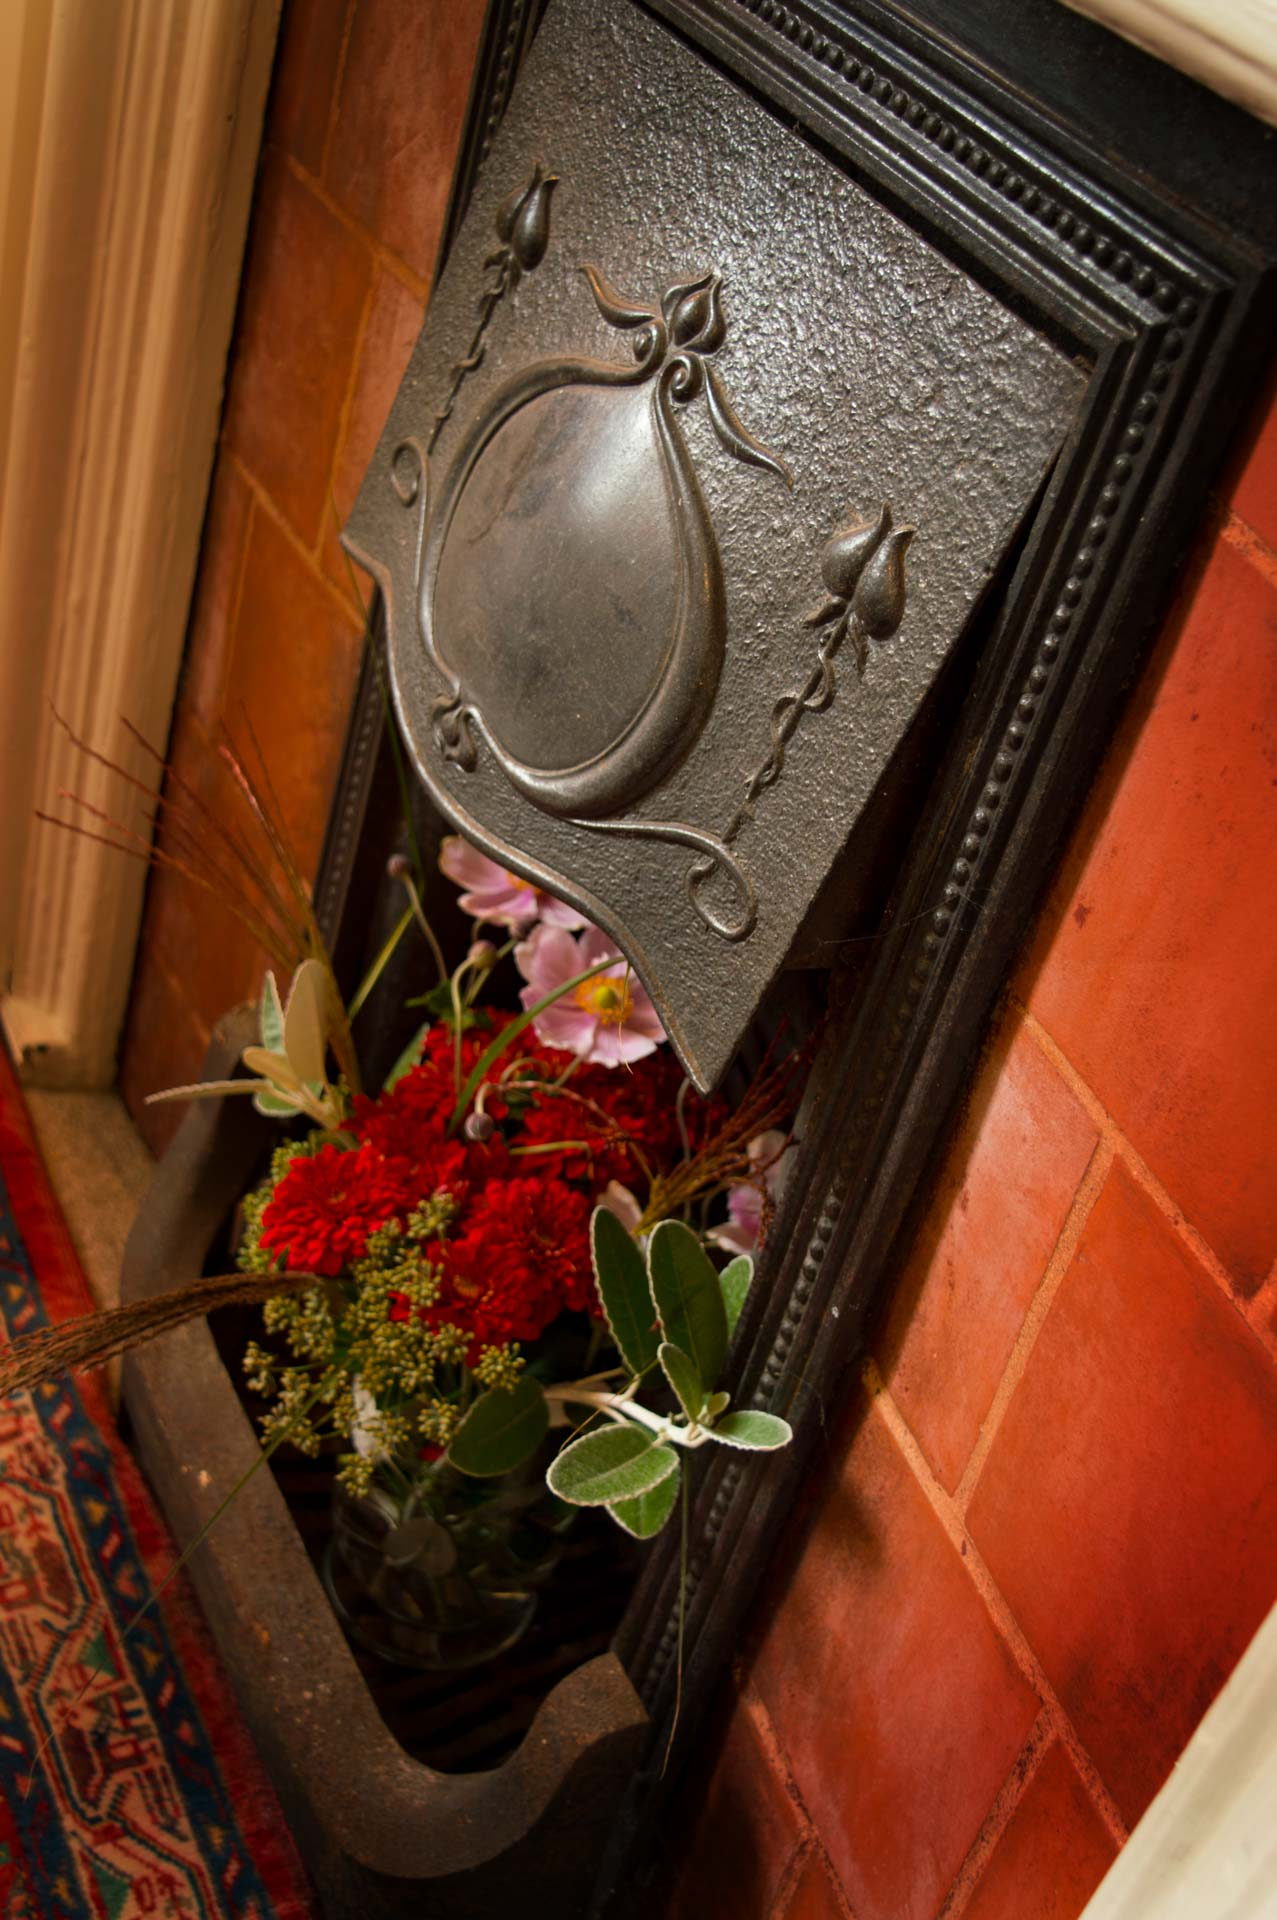 Ornamental fire place with flowers.